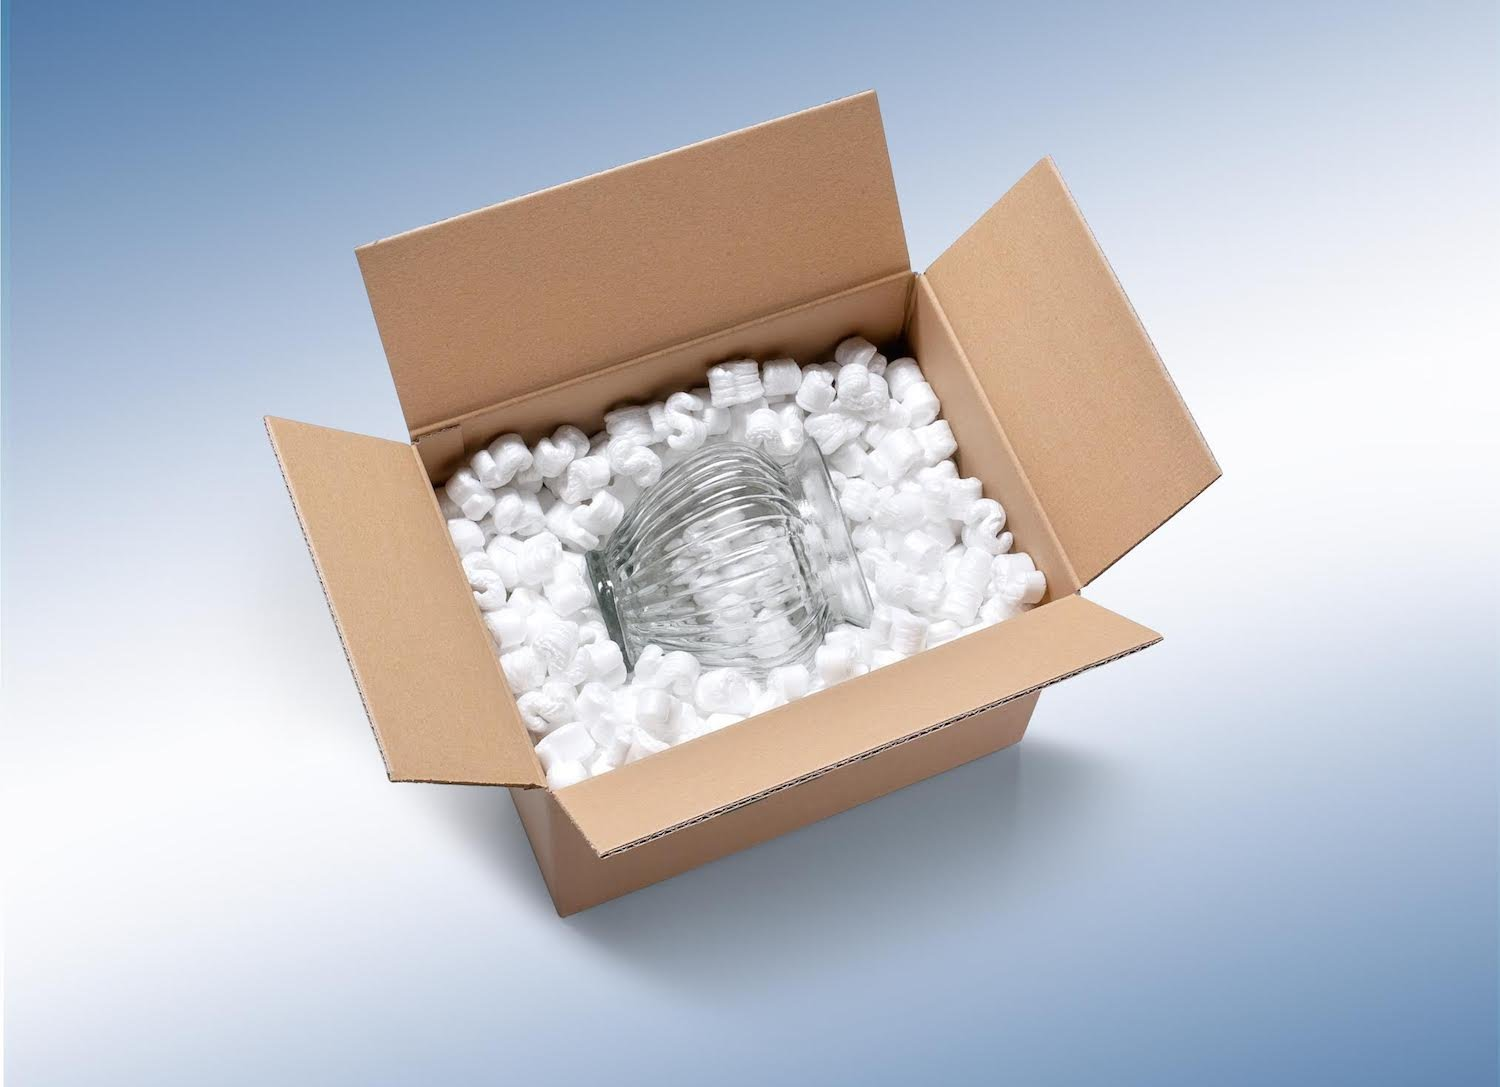 Consider How Packaging Fill Impacts Box Dimensions